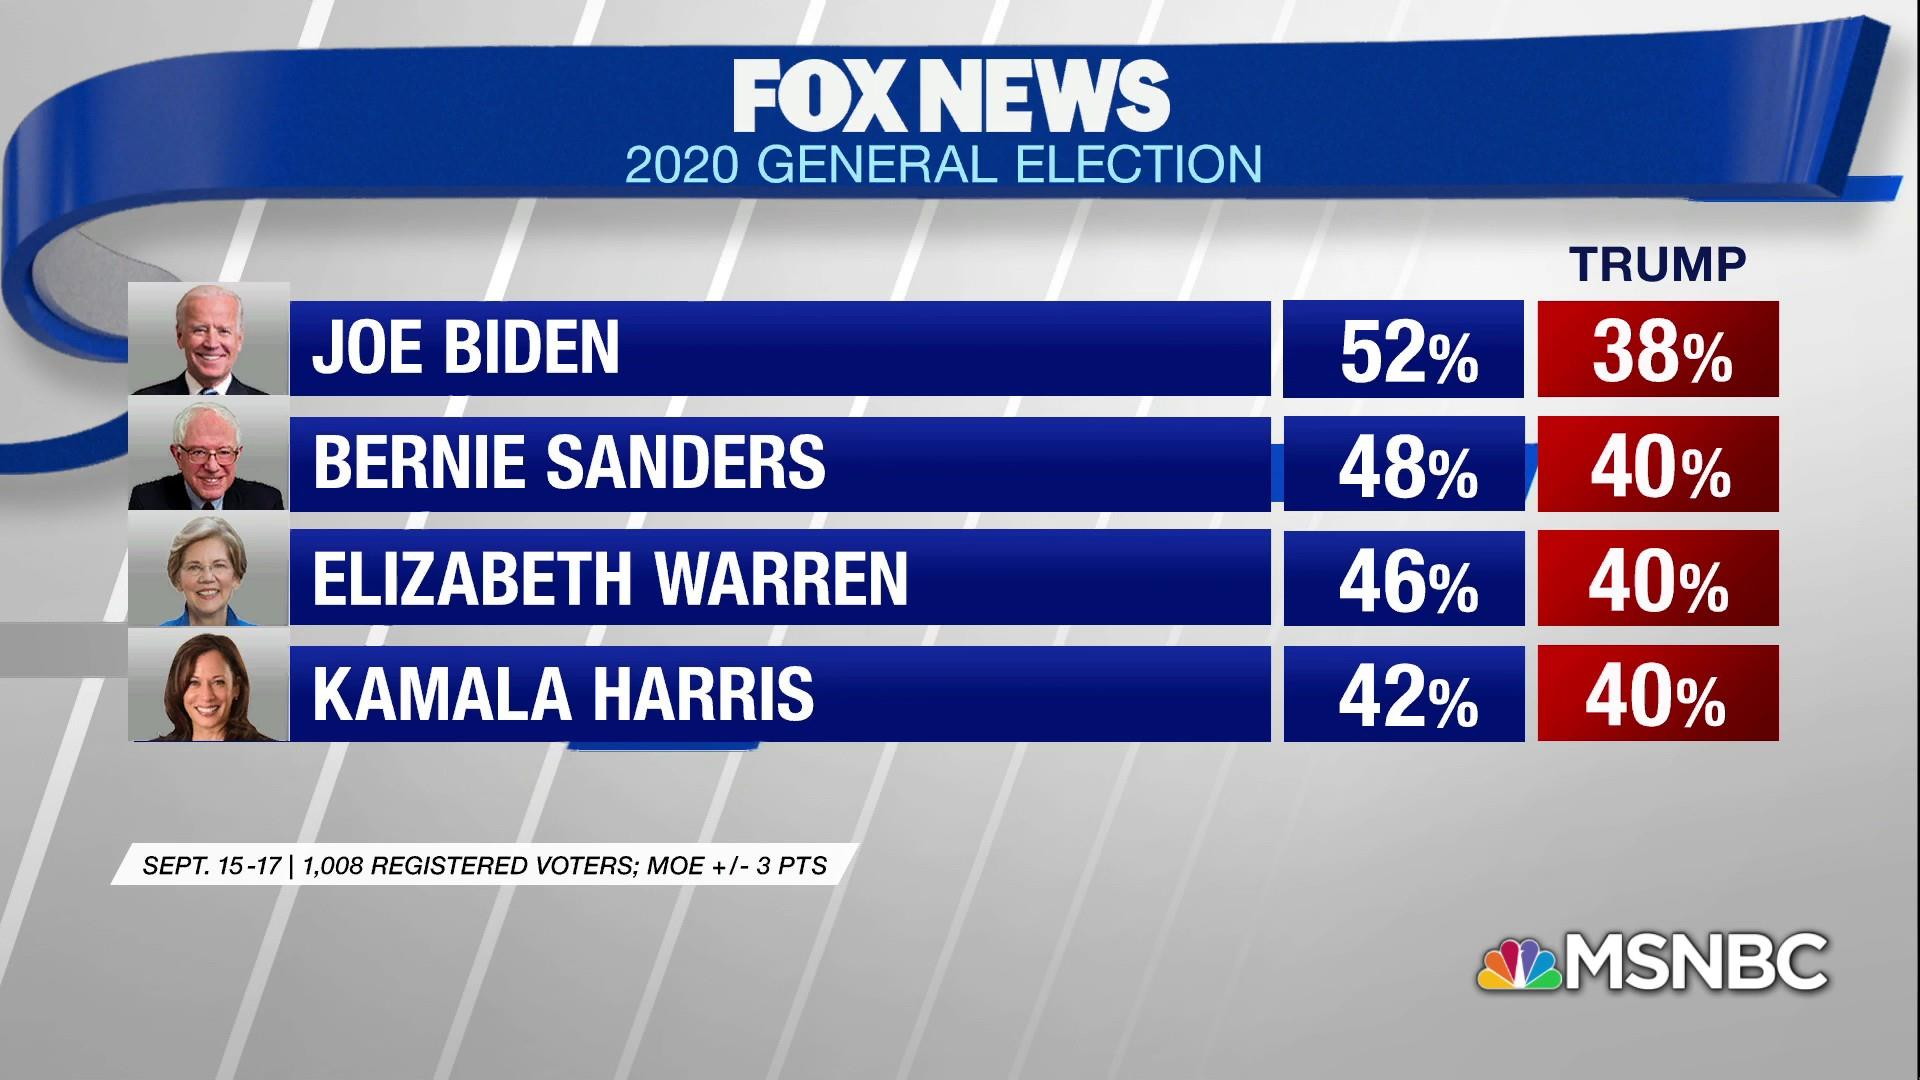 New poll show Democrats beating Trump in head to head match-ups